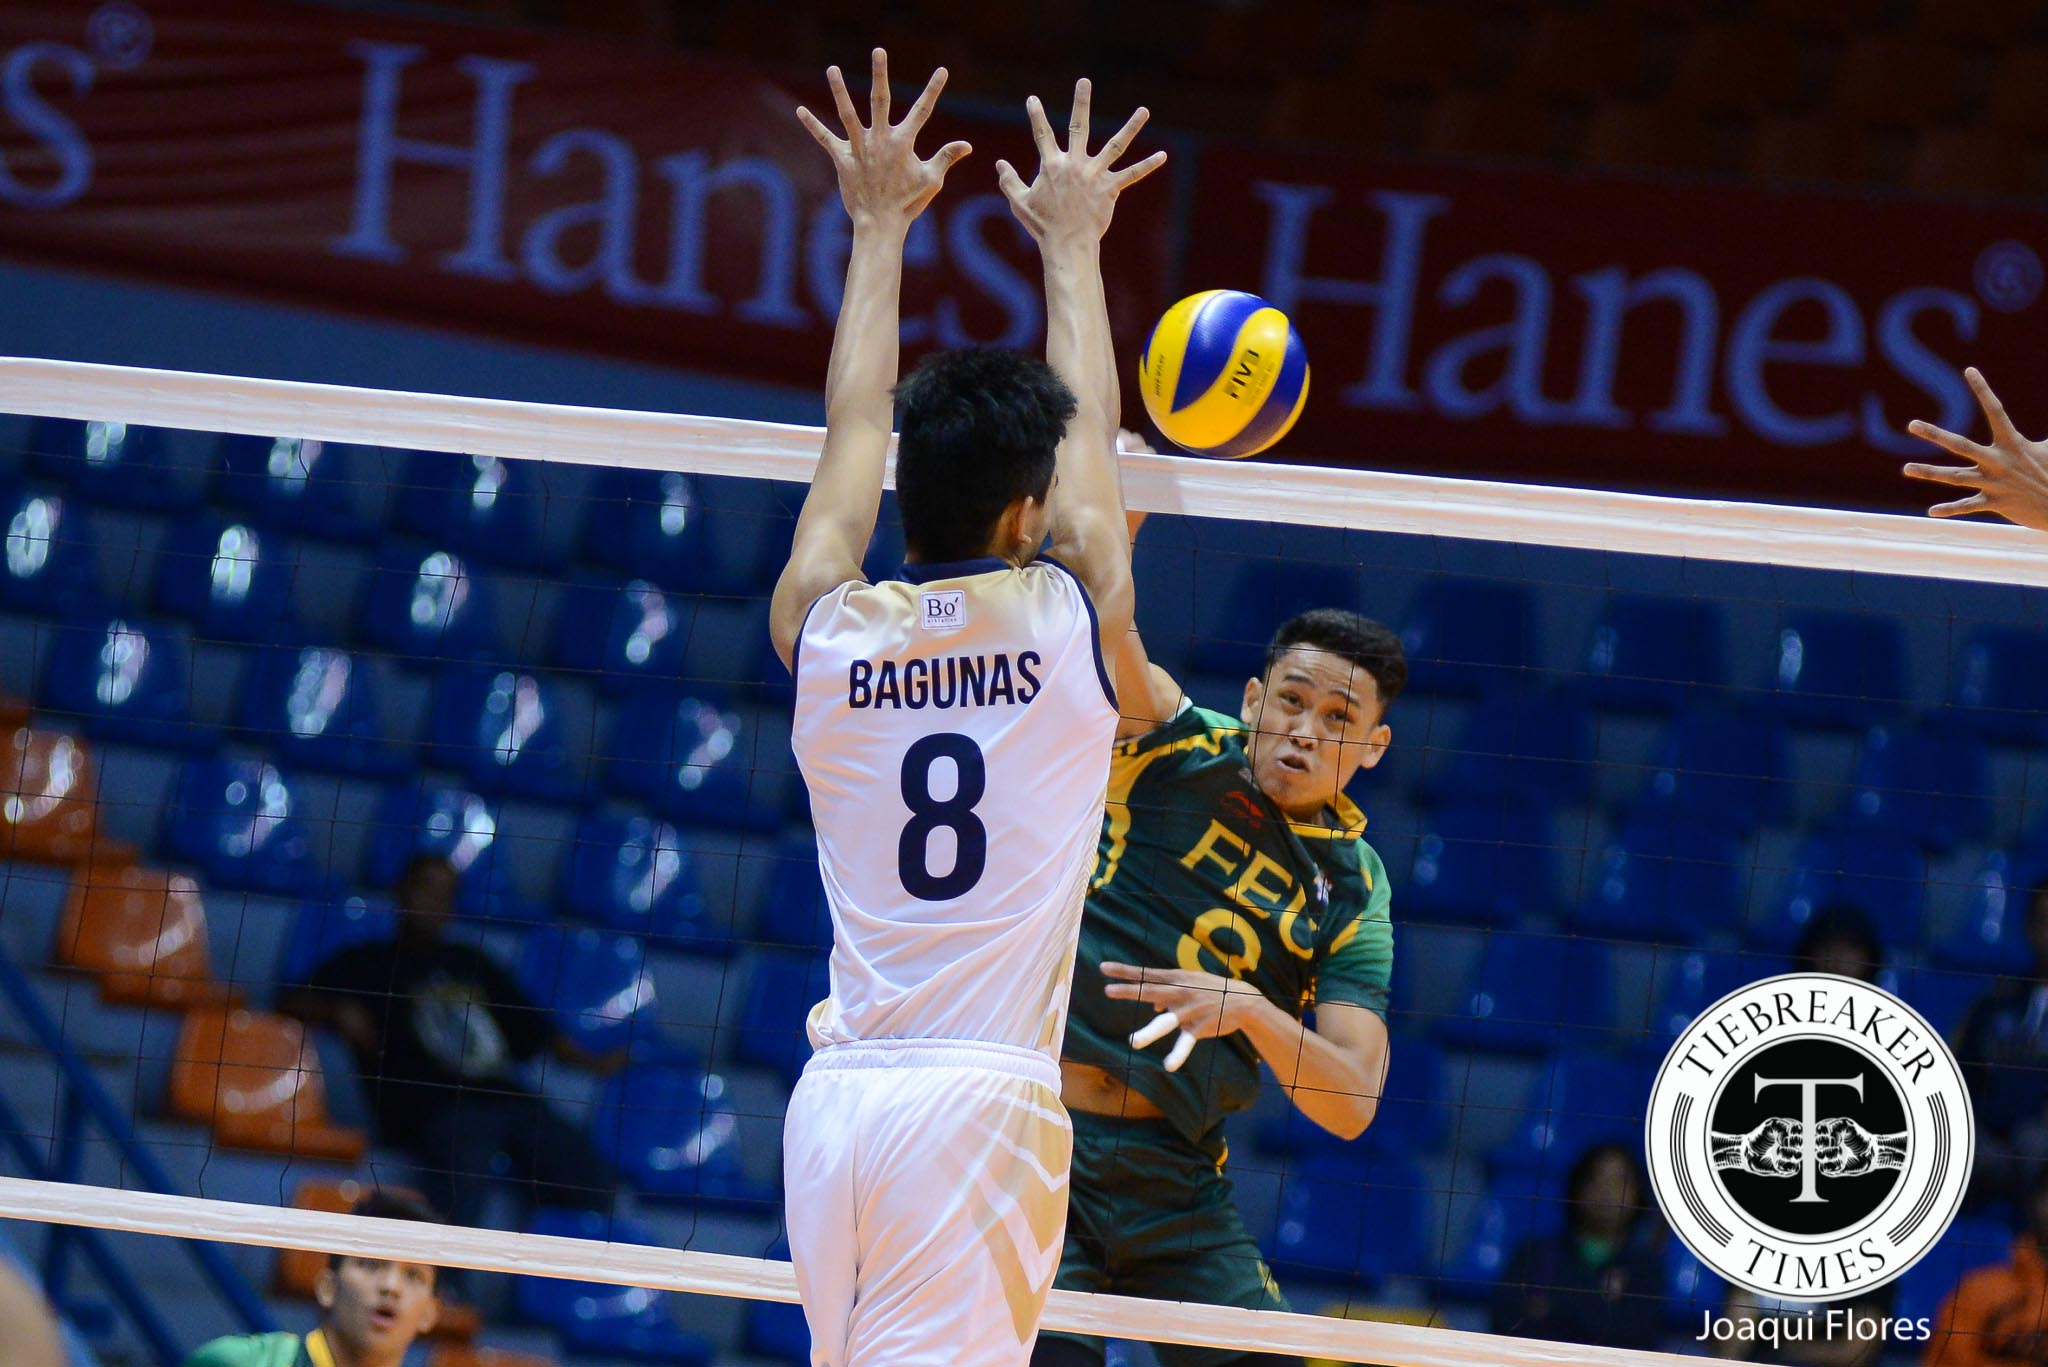 Tiebreaker Times FEU caps first round with masterful beating of NU FEU News NU UAAP Volleyball  UAAP Season 78 Men's Volleyball UAAP Season 78 NU Men's Volleyball Madz Gampong Kim Malabunga Jude Garcia JP Bugaoan Jeric Gacutan James Natividad FEU Men's Volleyball